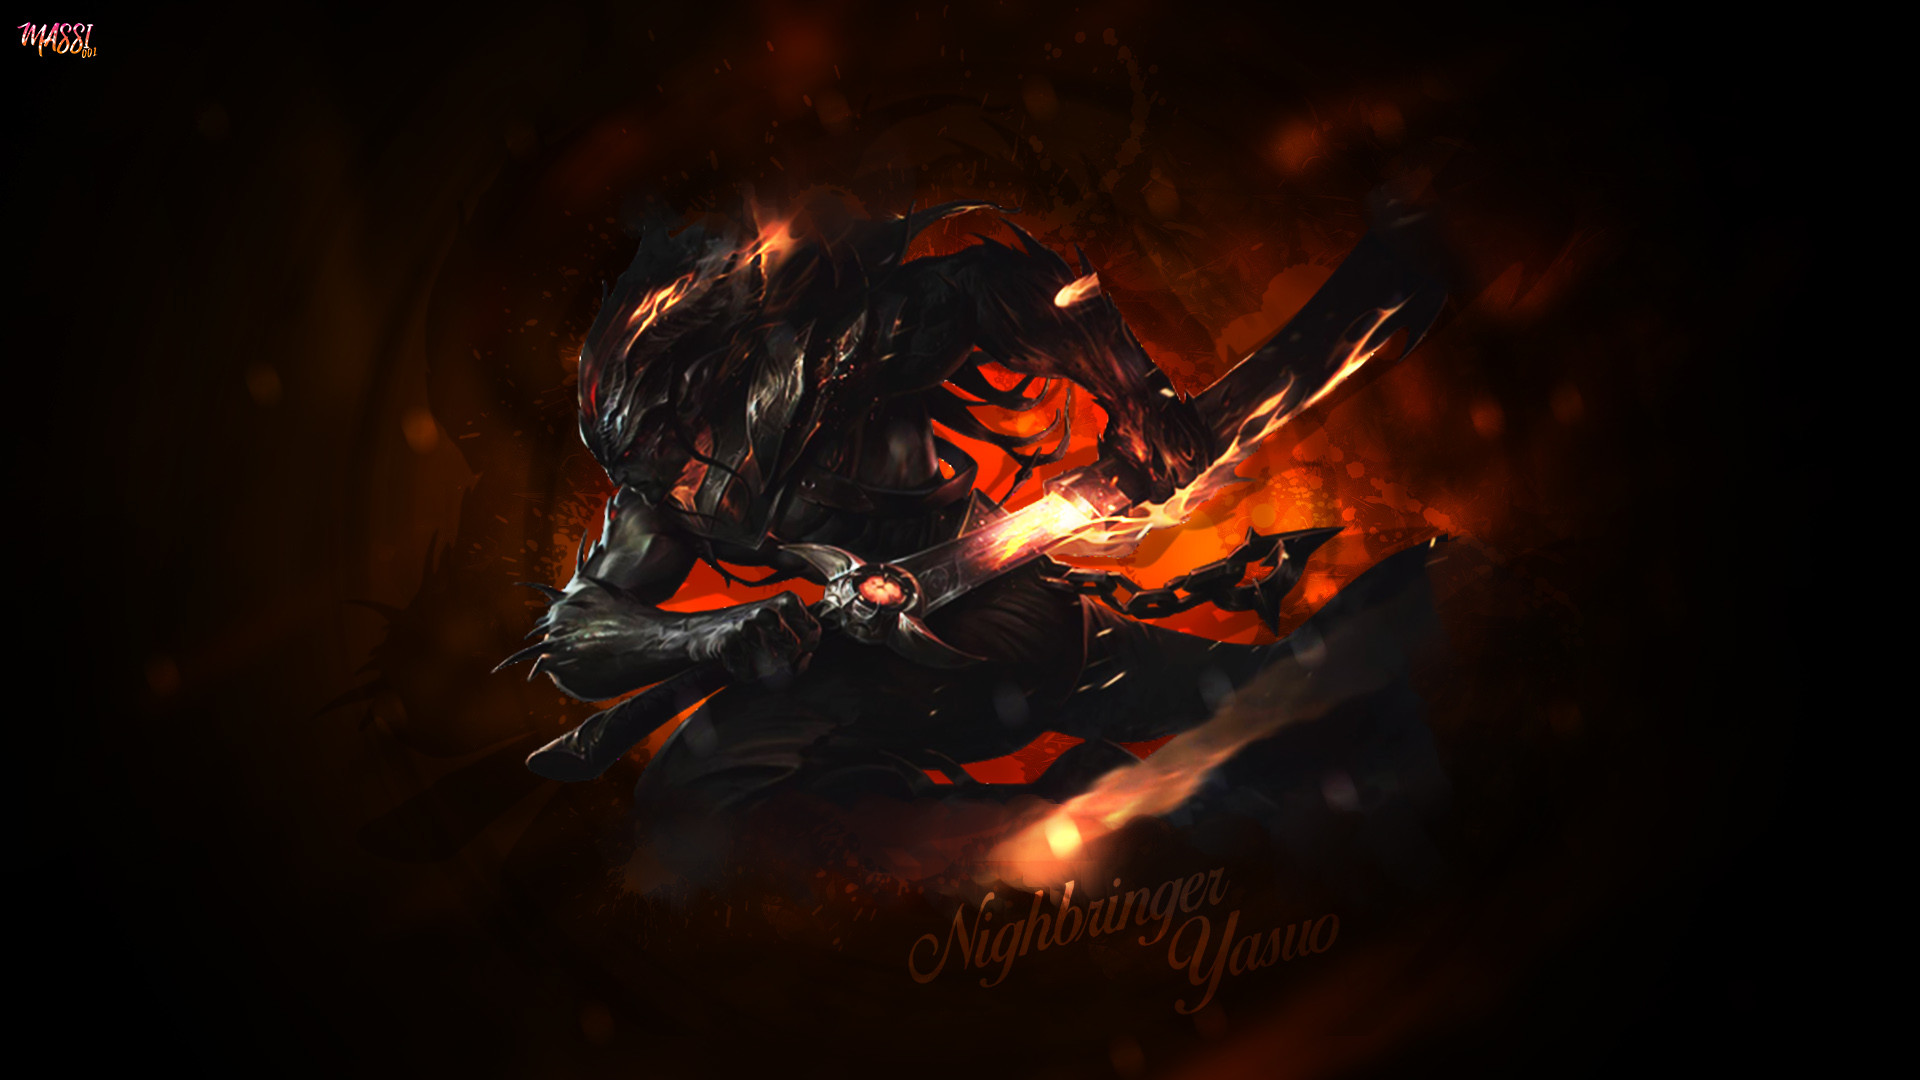 Nightbringer Yasuo by Massi001 HD Wallpaper Background Official Artwork  League of Legends lol